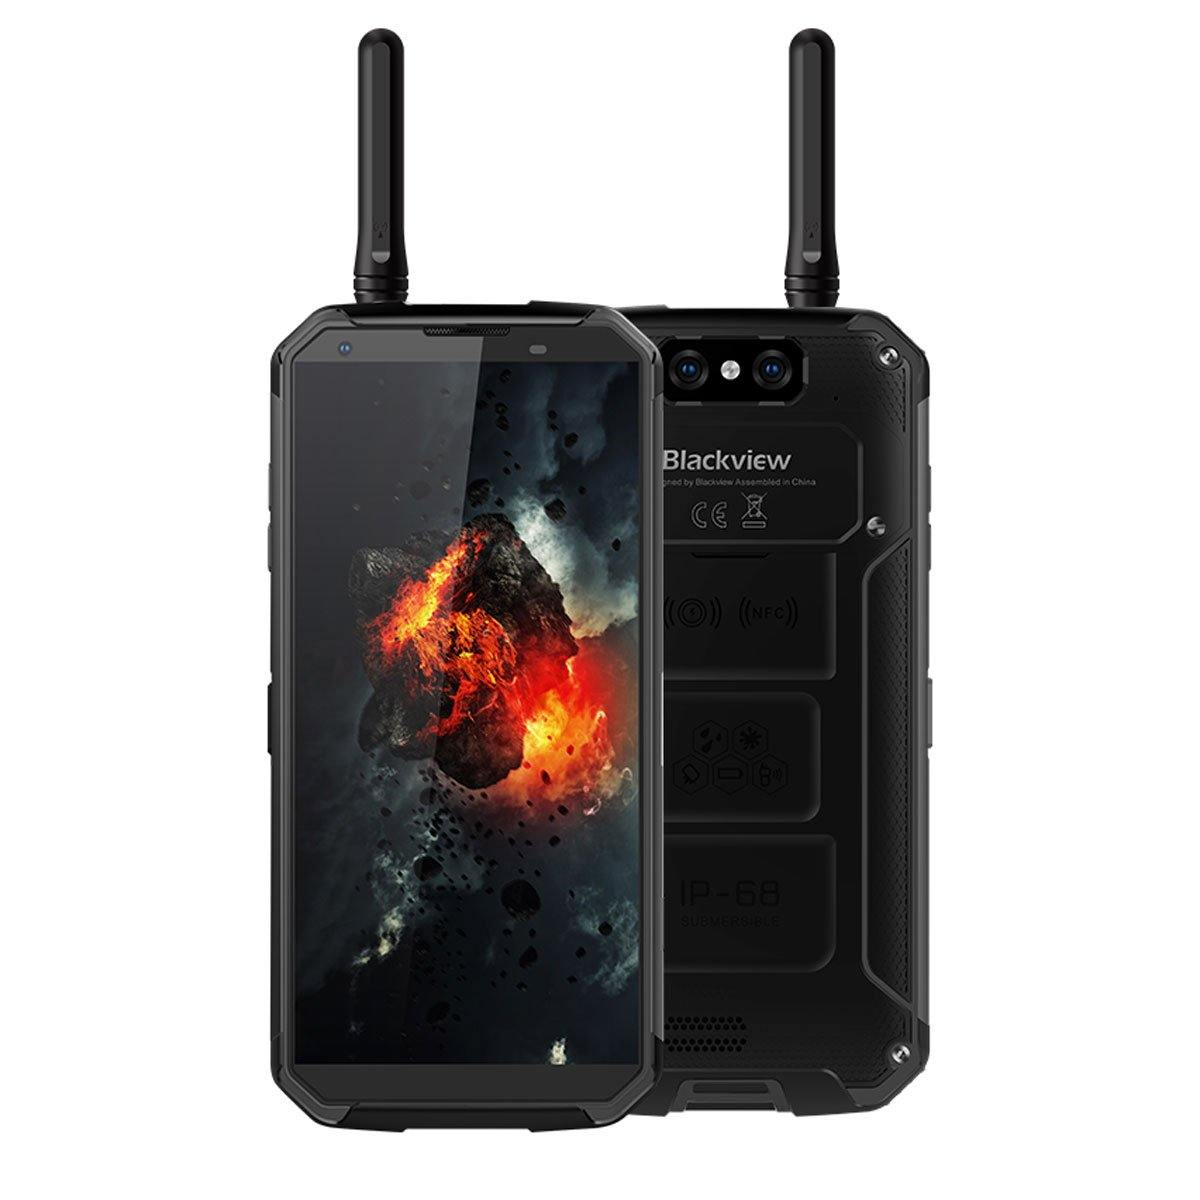 Blackview BV9500 Pro Walkie Talkie 4G Rugged Phone - Blackview Store